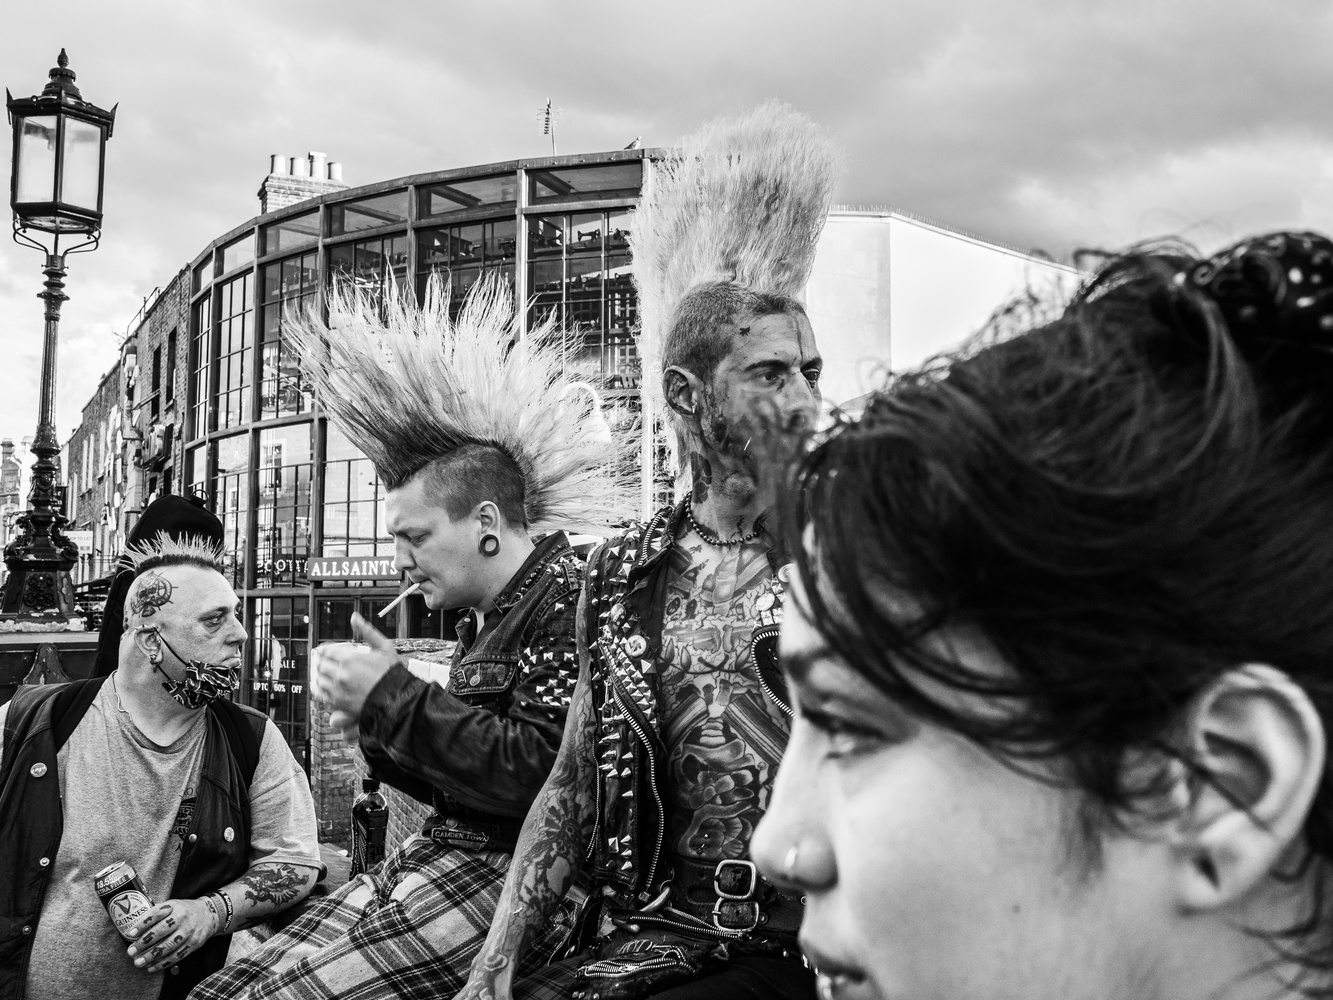 Punk's from Camden Town by Tomasz Kowalski